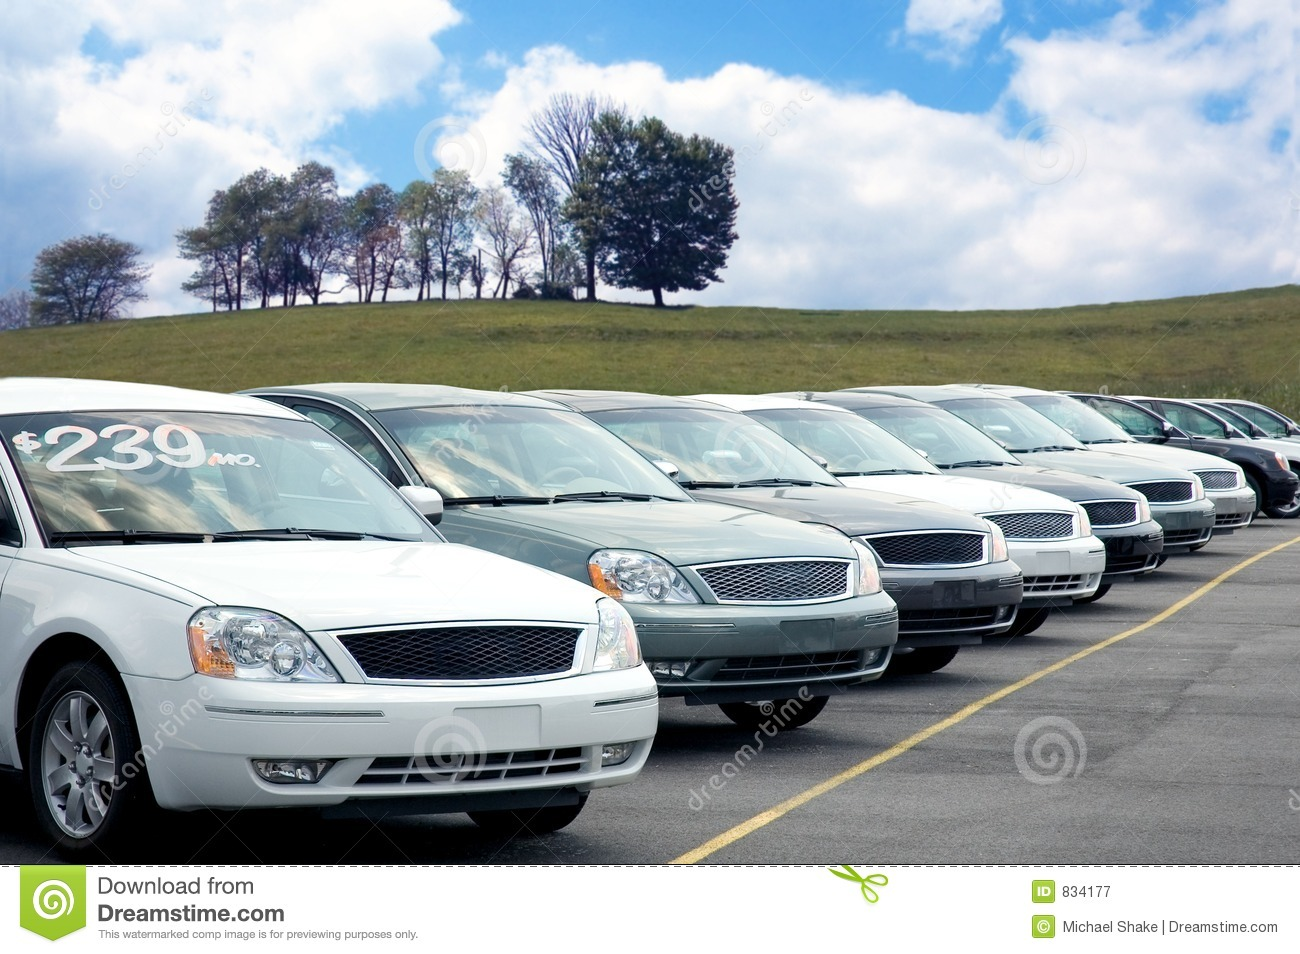 Car Dealers Lot Full Of Sedans For Sale  More Of My Car Photos Can Be